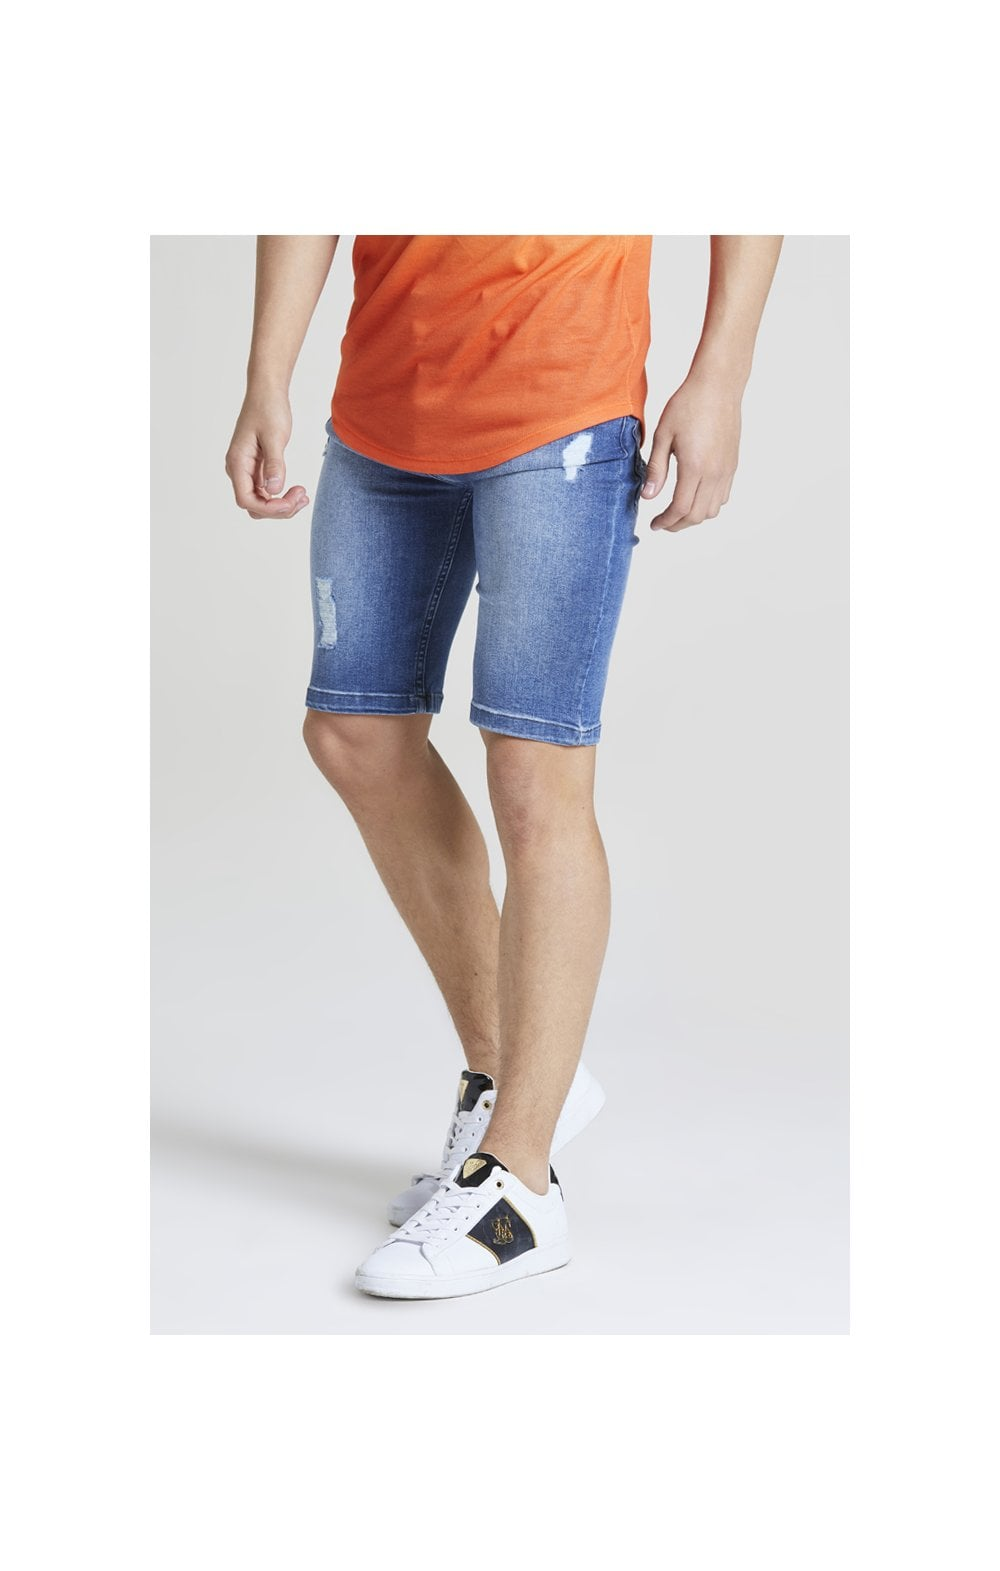 Illusive London Distressed Denim Shorts - Midstone Wash Blue